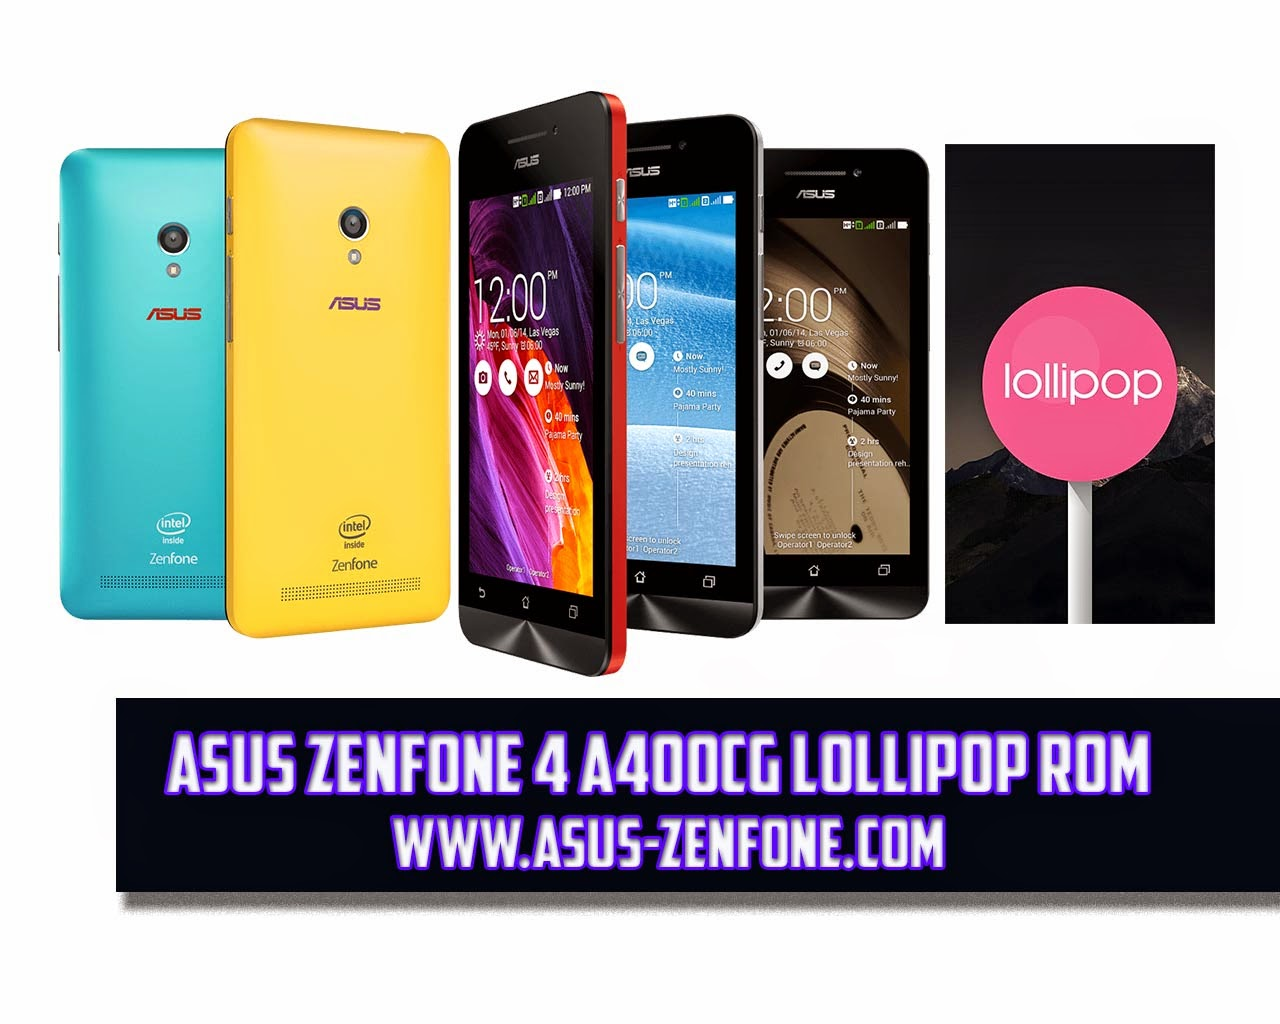 ROM] ASUS Zenfone 4 A400CG Android 5 0 Lollipop Download